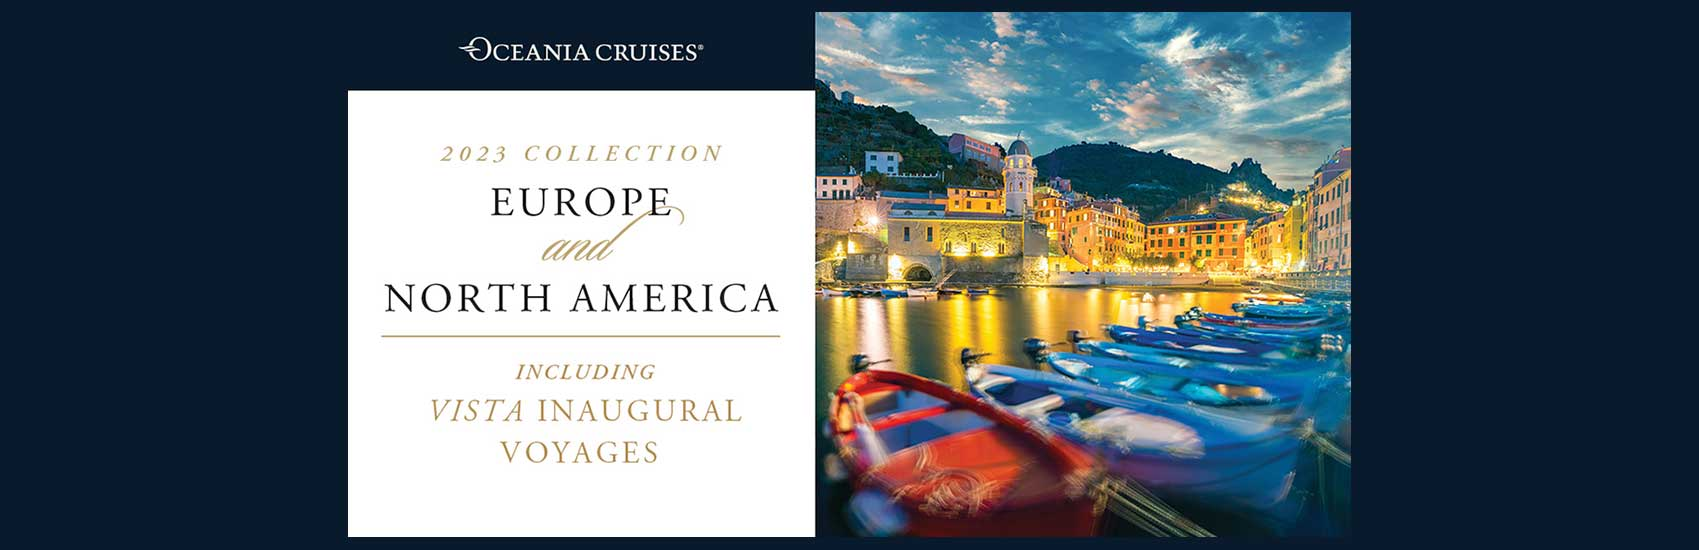 New 2023 North America and Europe Voyages with Oceania